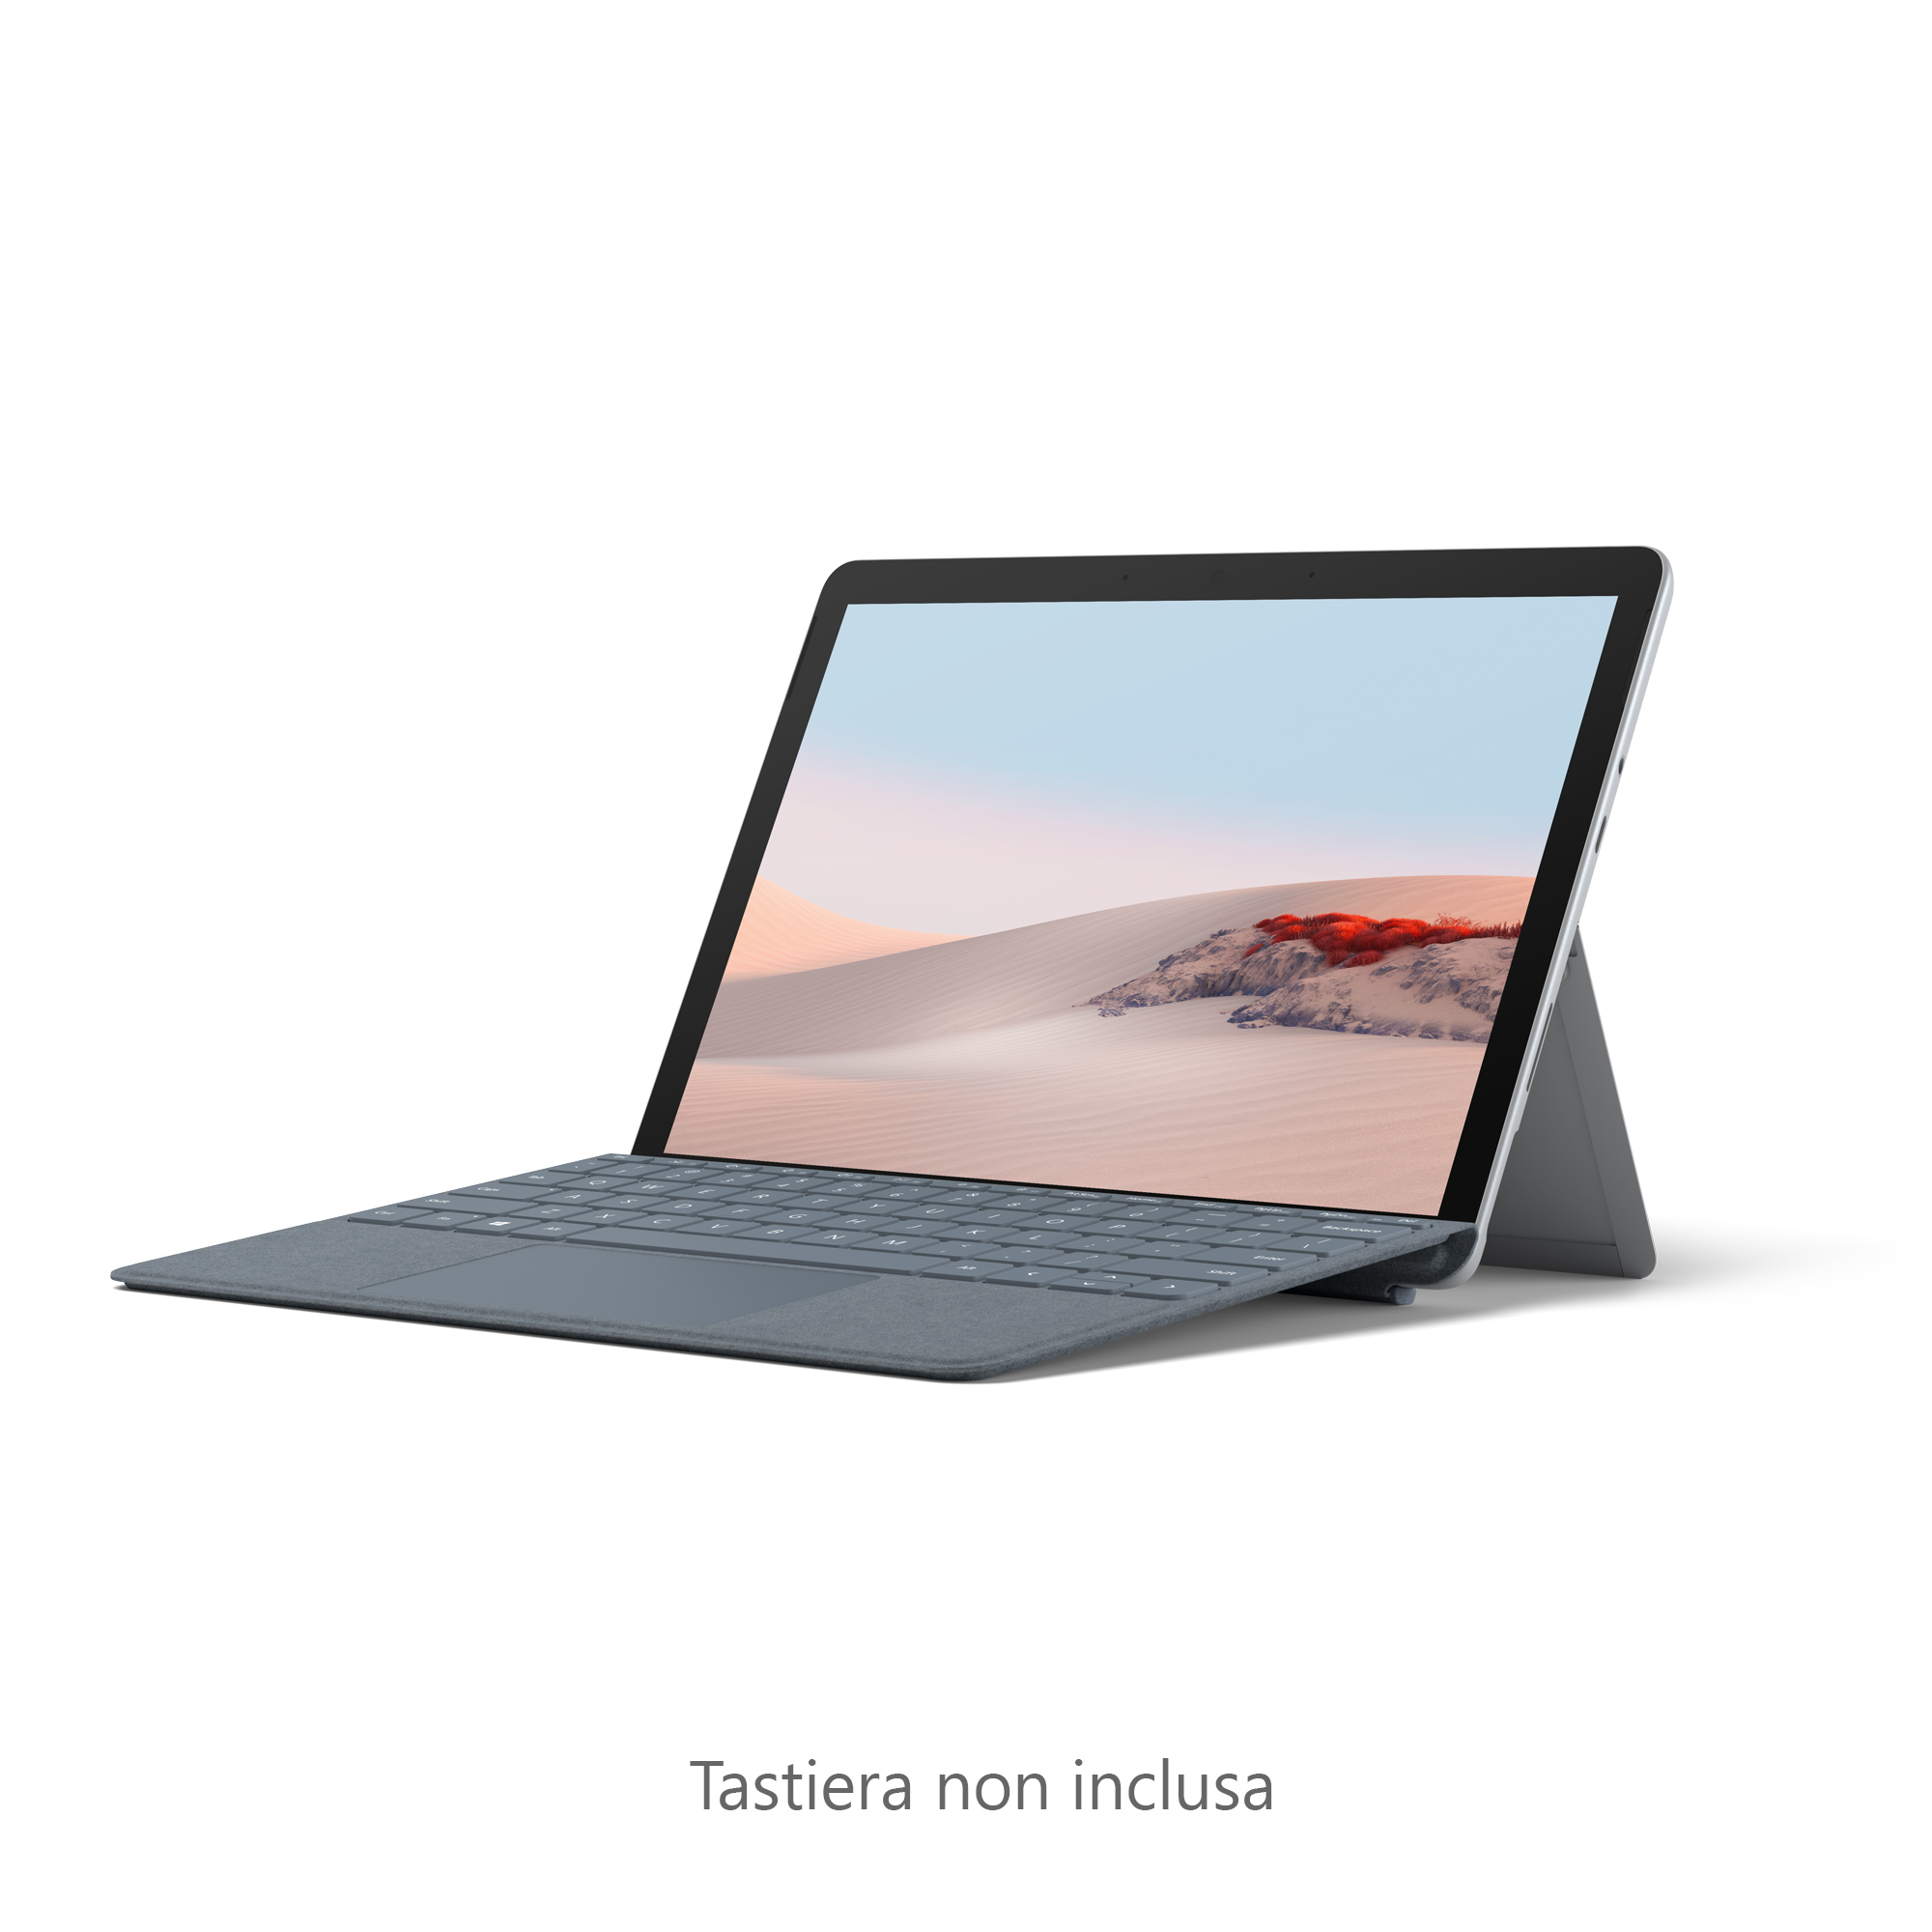 Microsoft Surface Go 2 - Tablet - Core m3 8100Y / 1.1 GHz - Win 10 Home in S mode - 8 GB RAM - 128 GB SSD - 26.7 cm (10.